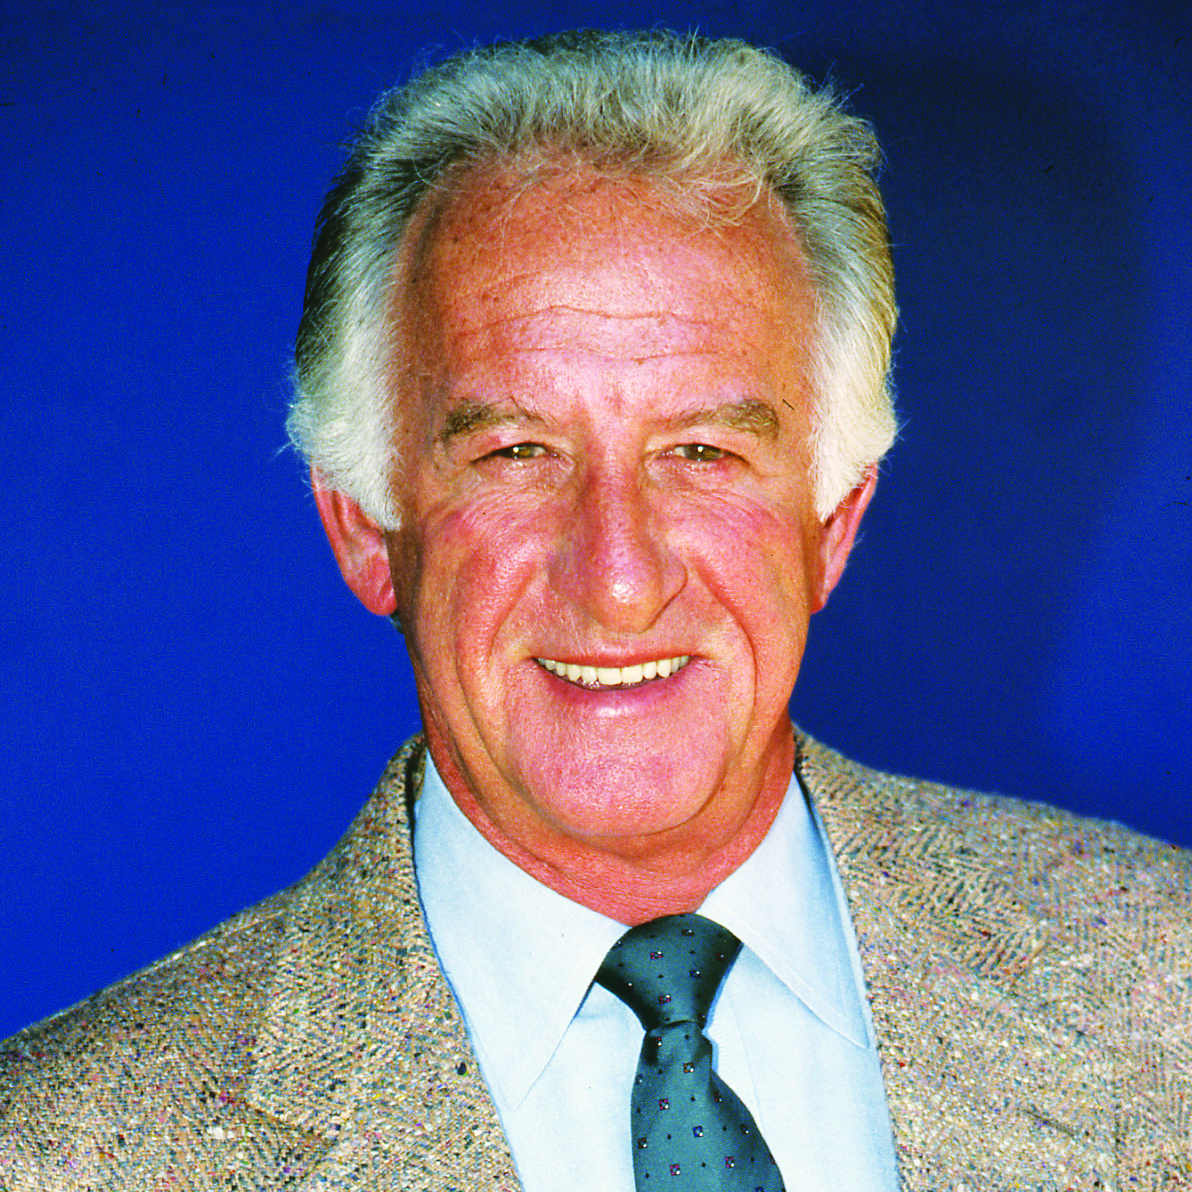 "2015 - Bob Uecker - ""Mr. Baseball"" started his career as a catcher for the Milwaukee Braves in 1962 and later became a TV host and actor. Uecker is a beloved member of the Milwaukee community and has been the Brewers play-by-play announcer since 1971."